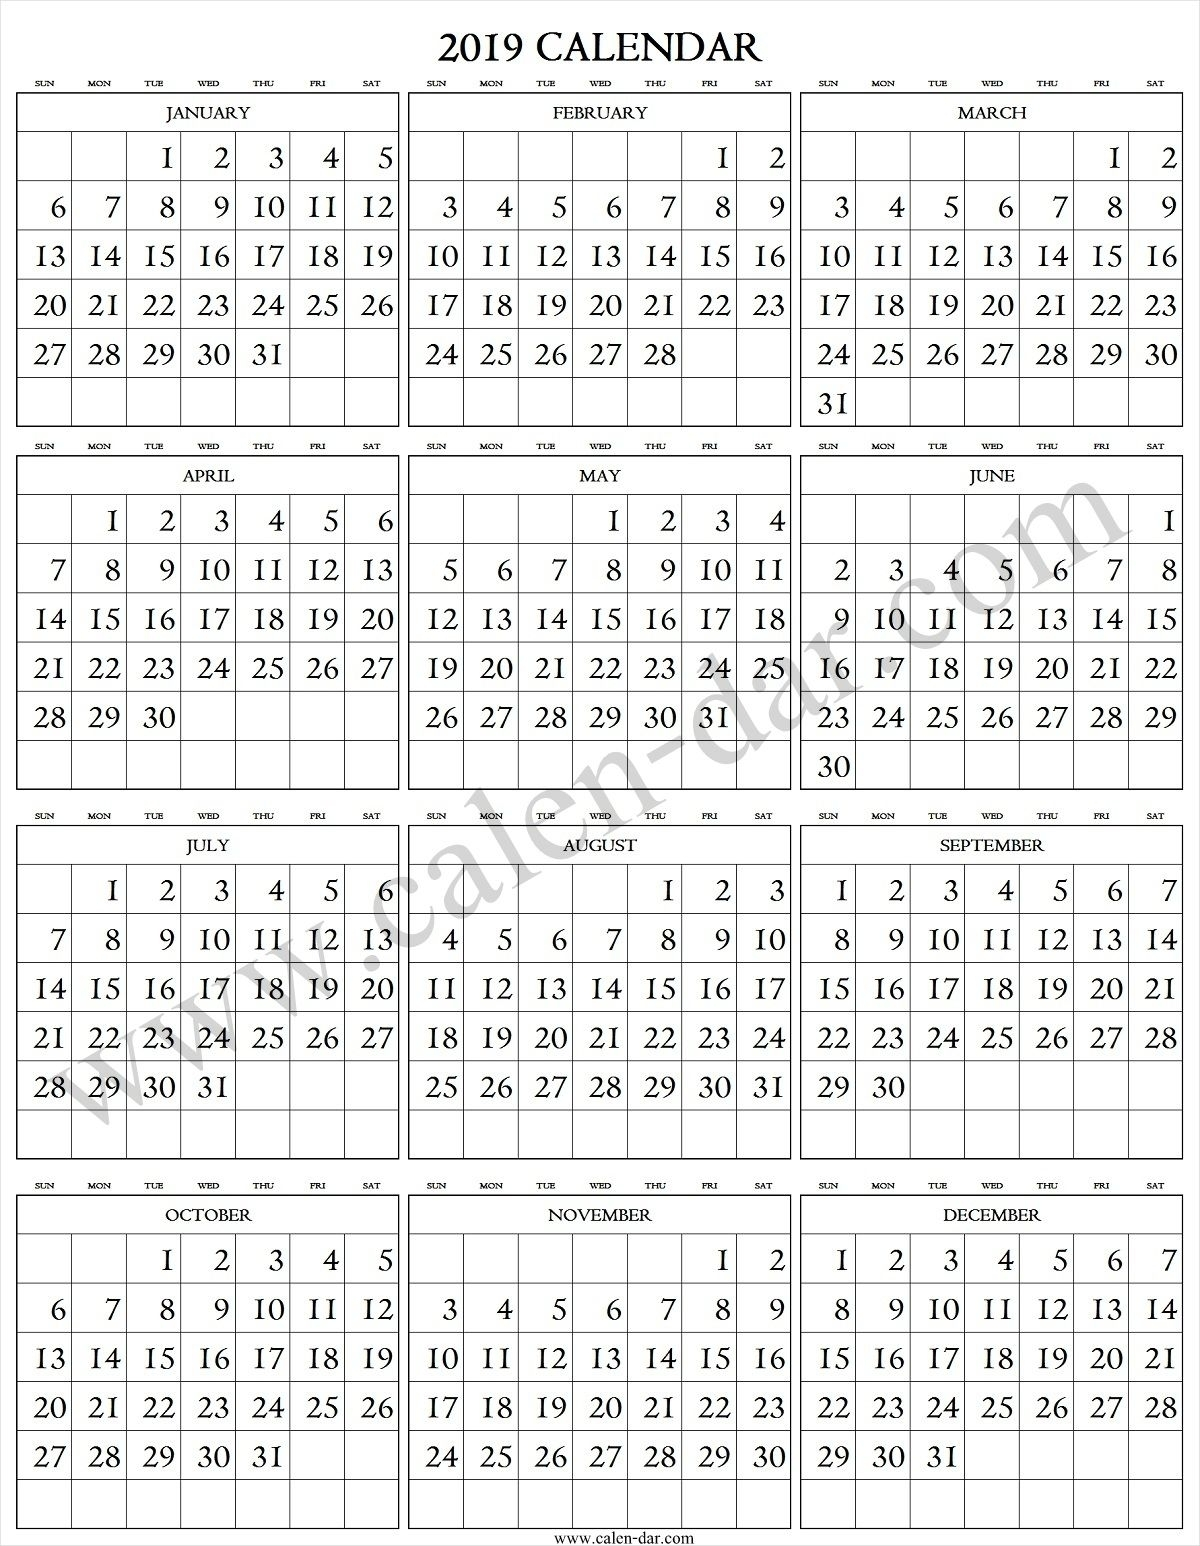 2019 Calendar Large Numbers | 2019 Calendar, Printable for Large Printable Numbers 1 31